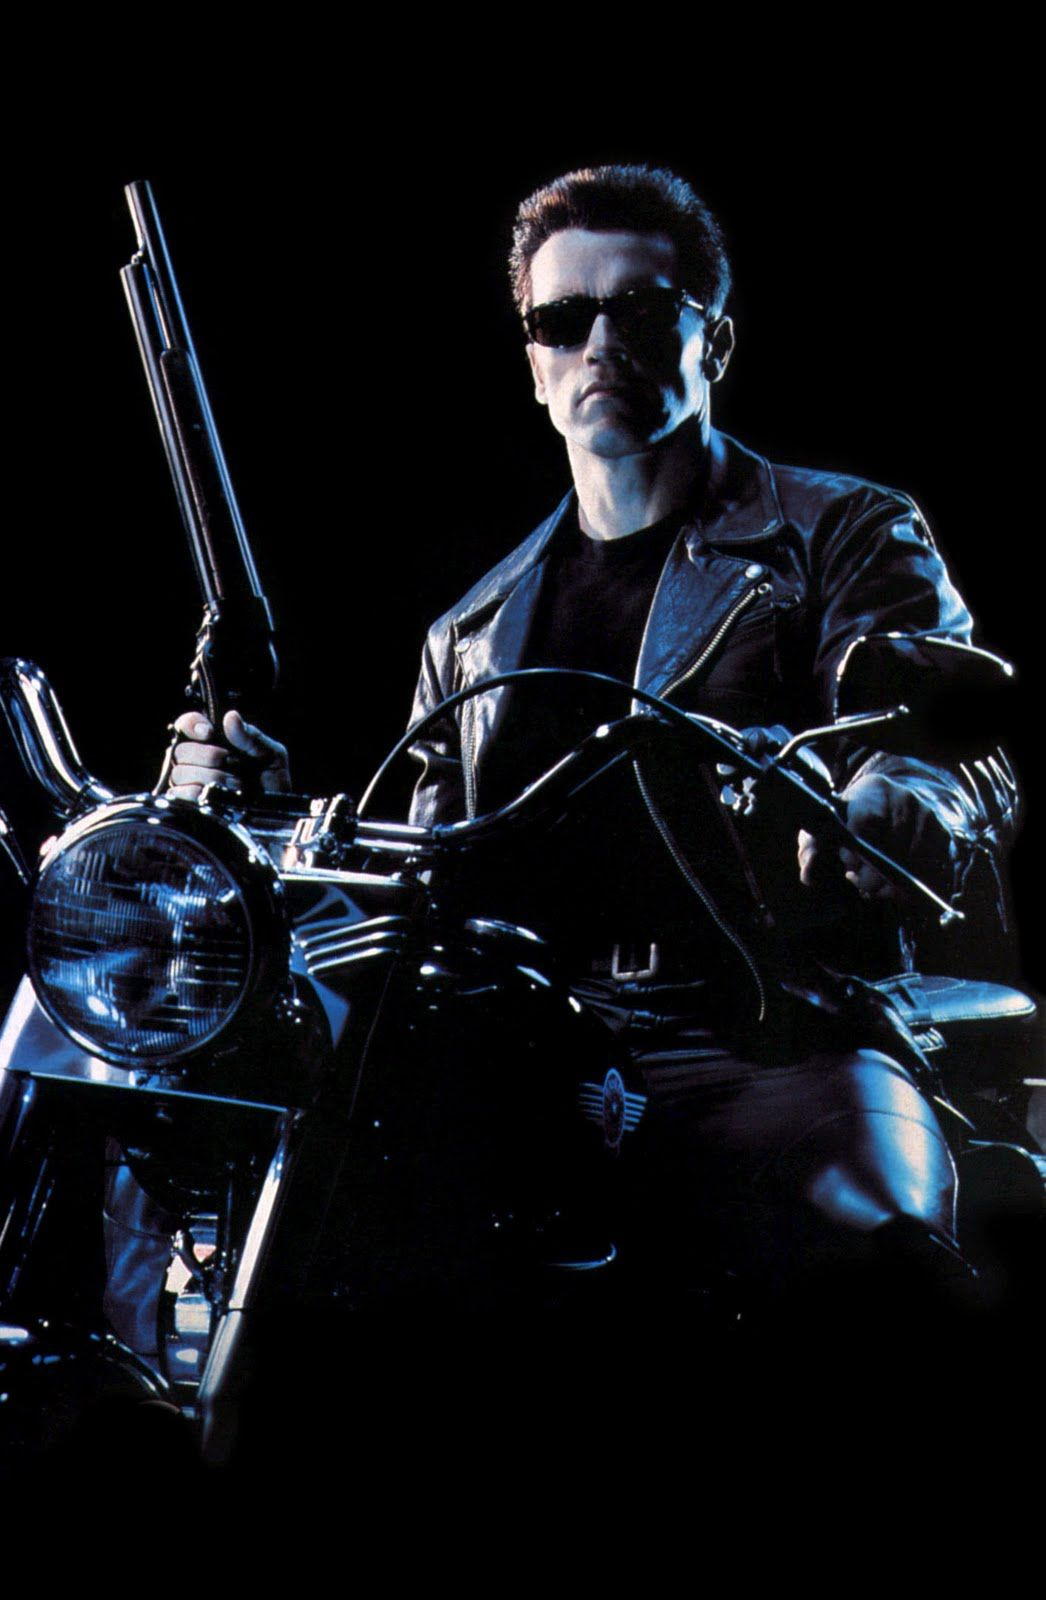 From Lucasdle With Images Terminator Movies Terminator